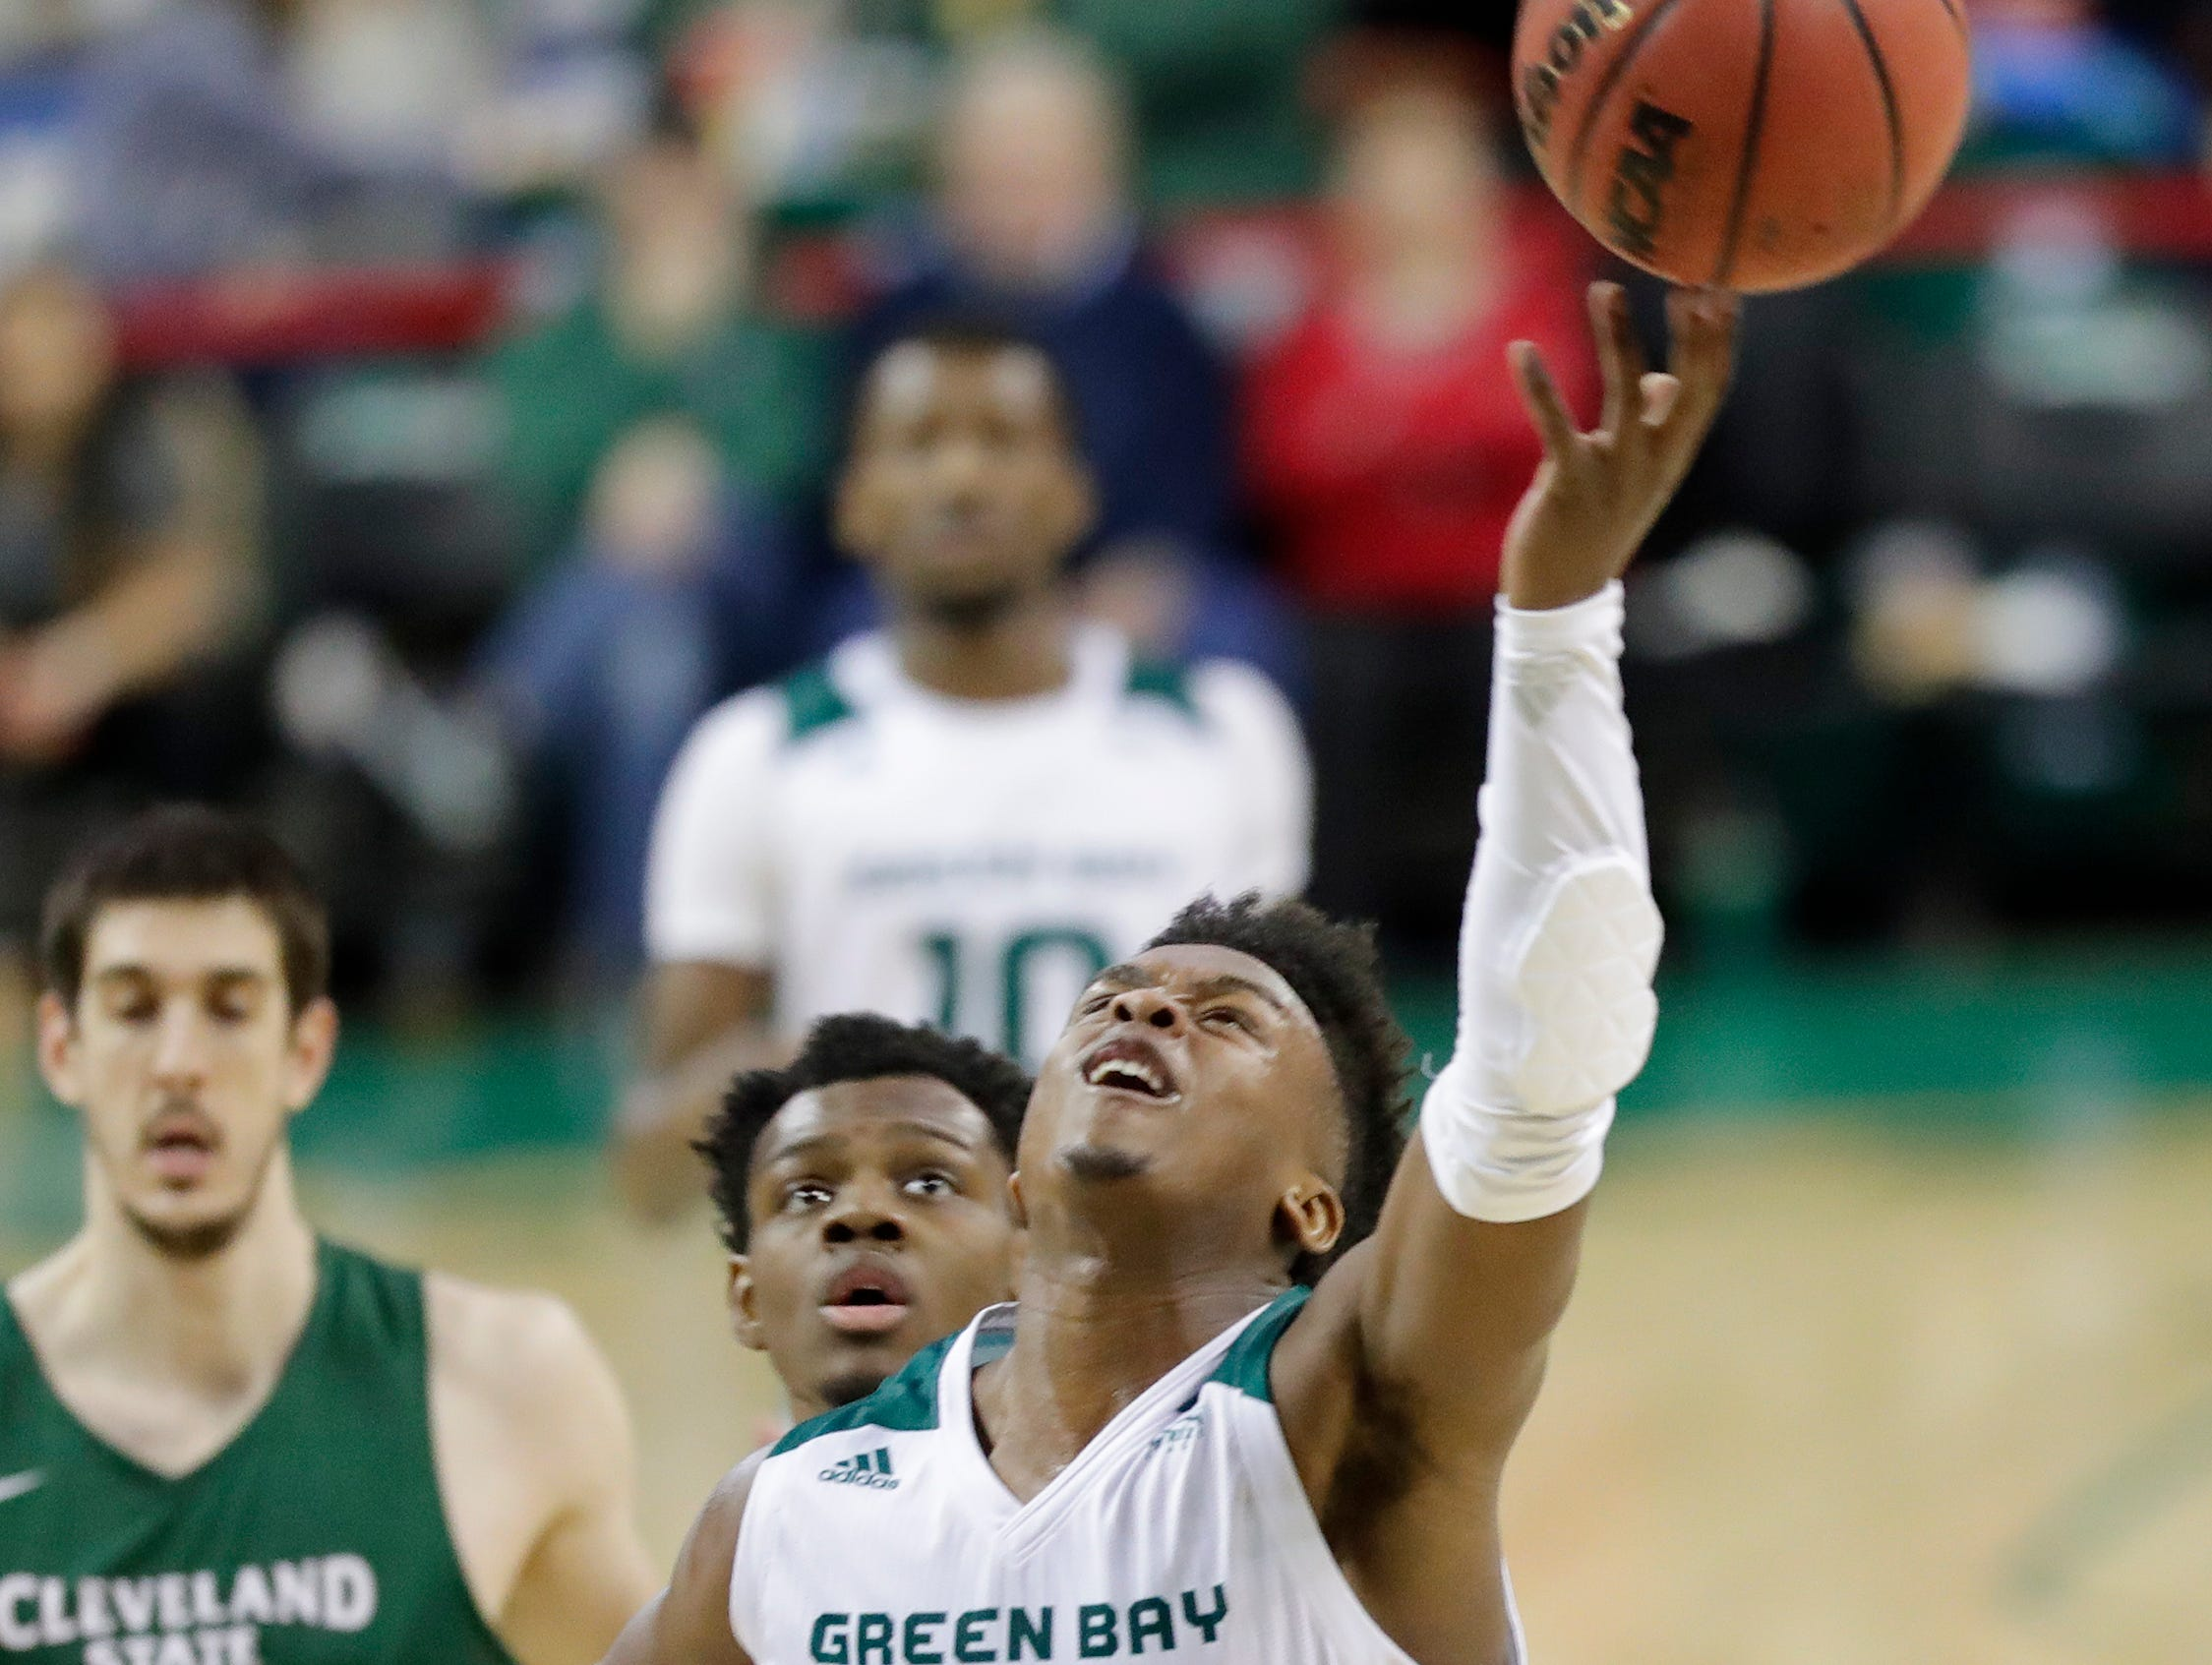 Green Bay Phoenix guard PJ Pipes (2) gets bumped out of bounds against the Cleveland State Vikings in a Horizon League basketball game at the Resch Center on Saturday, January 5, 2019 in Green Bay, Wis.